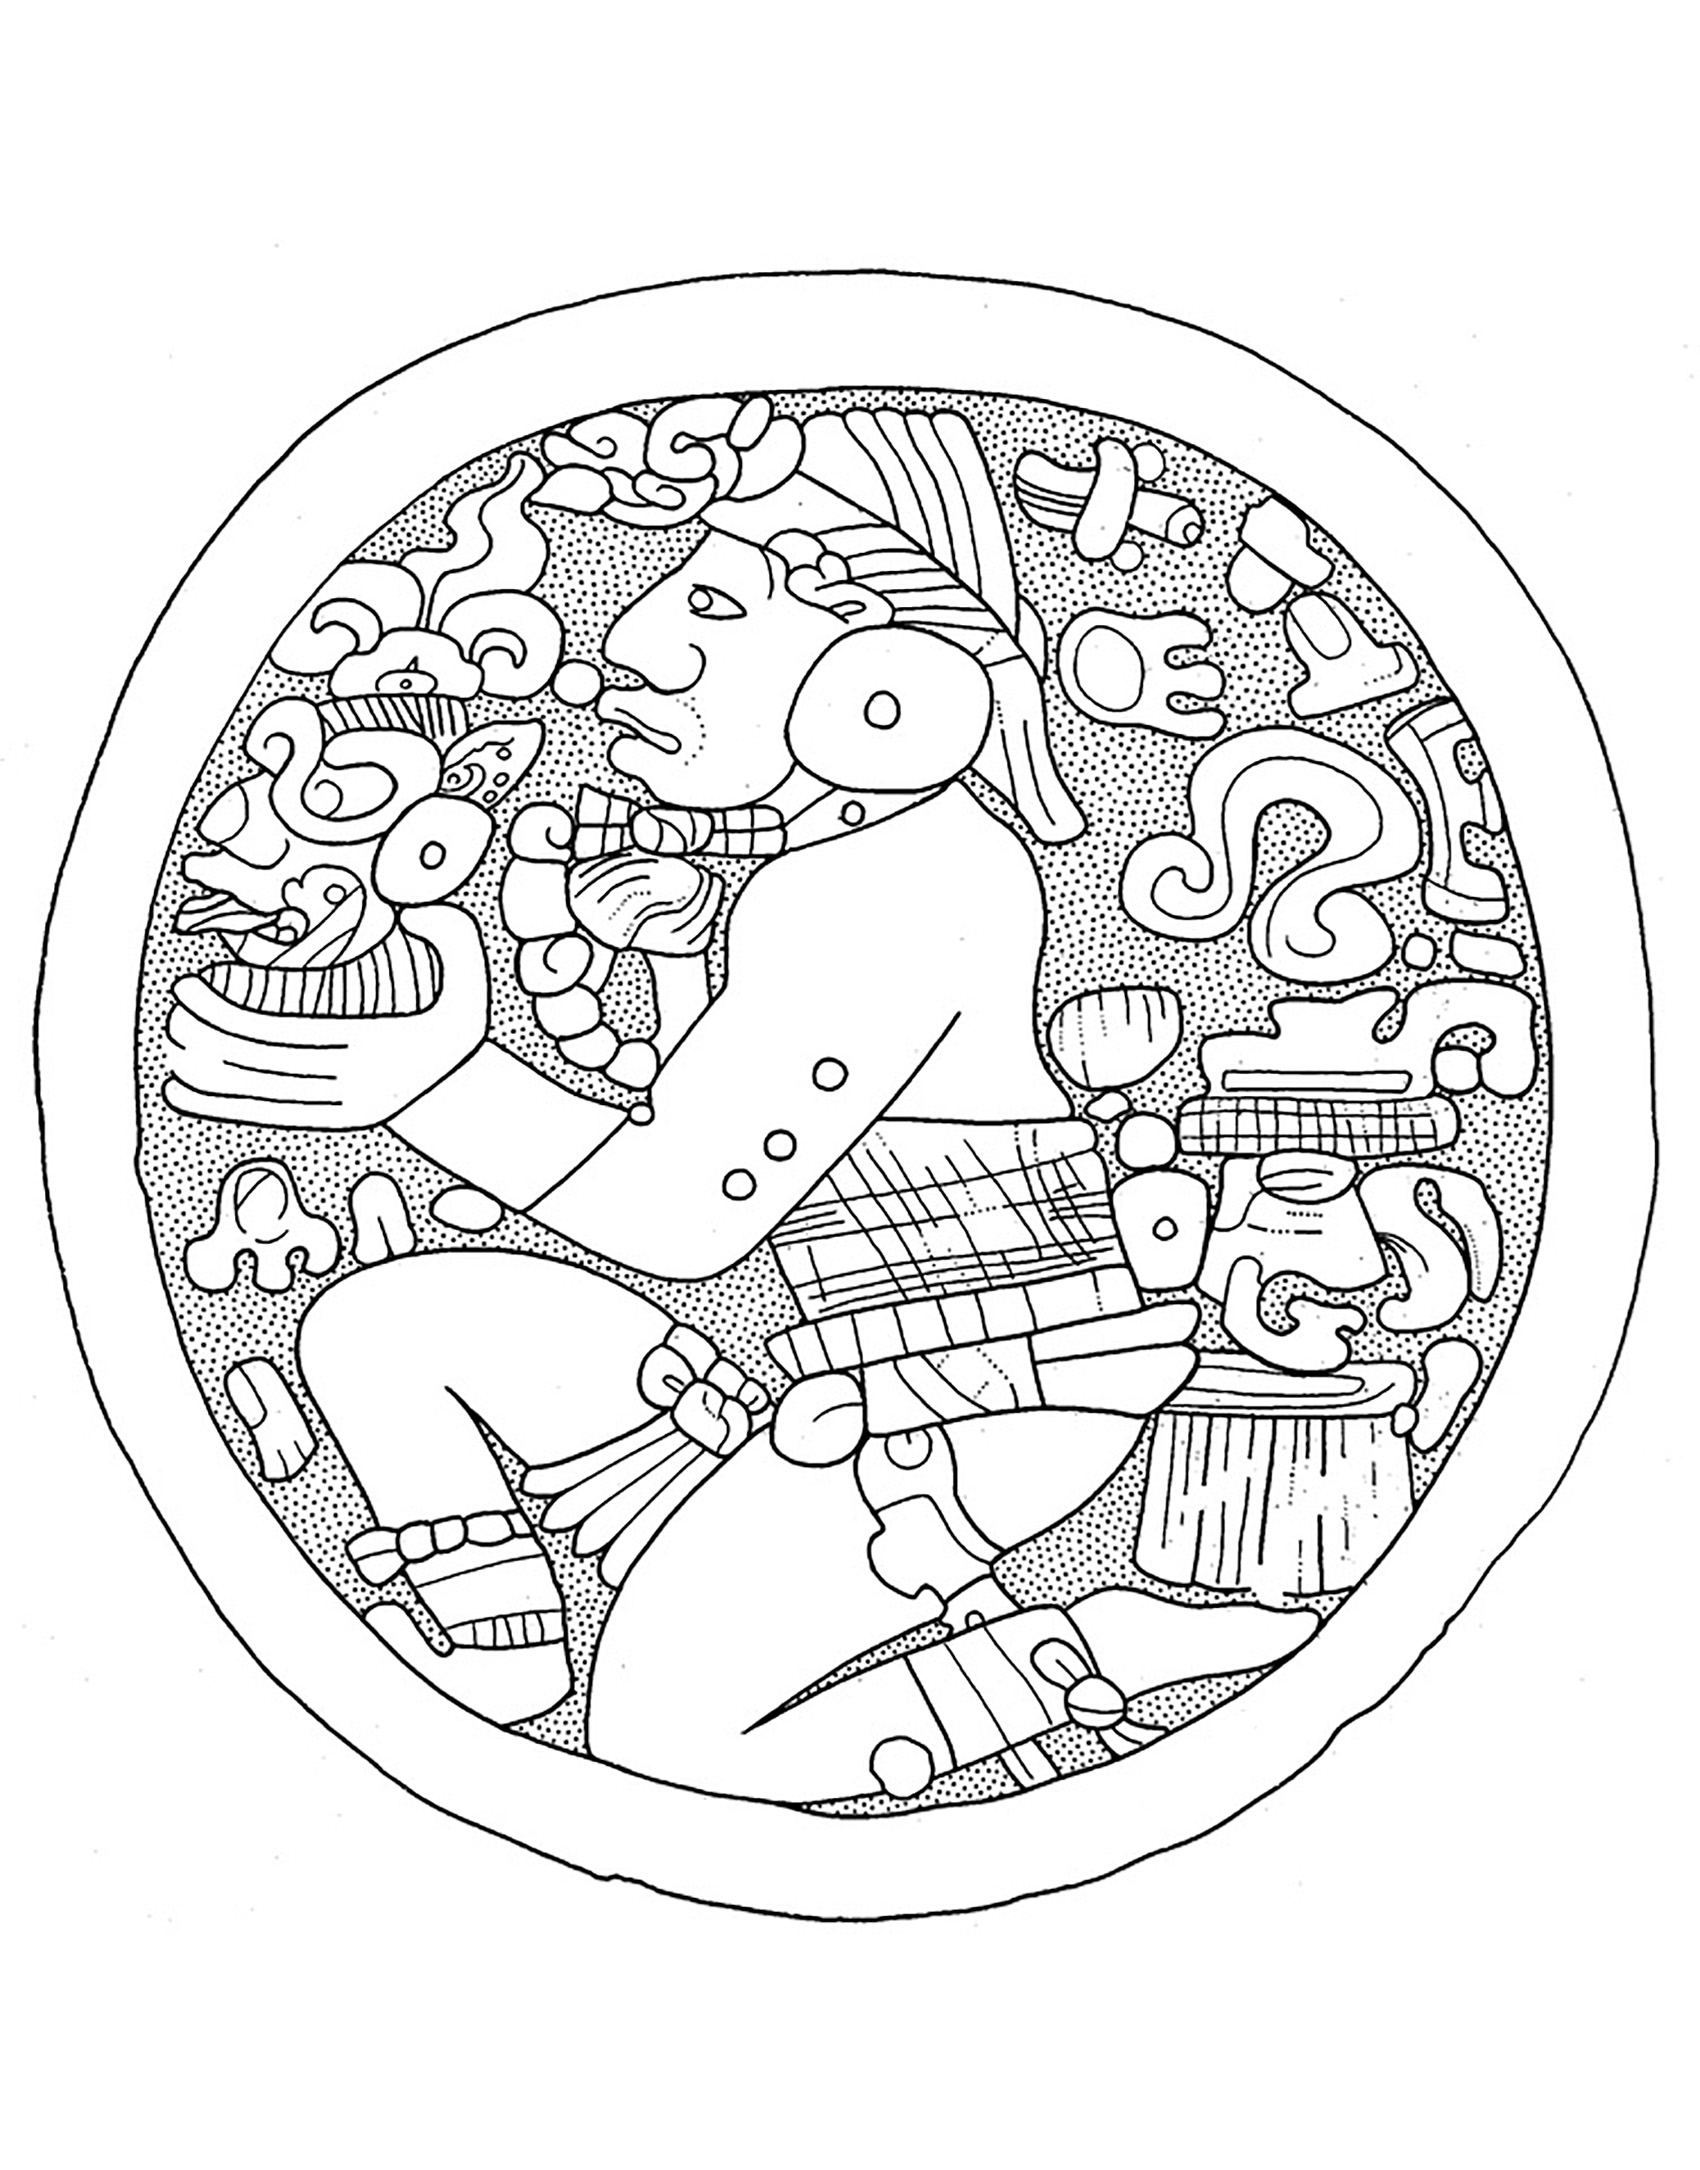 Early Classic Lowland Mayan Ear Flare plaque in the De Young Museum. Drawing by N. Carter.